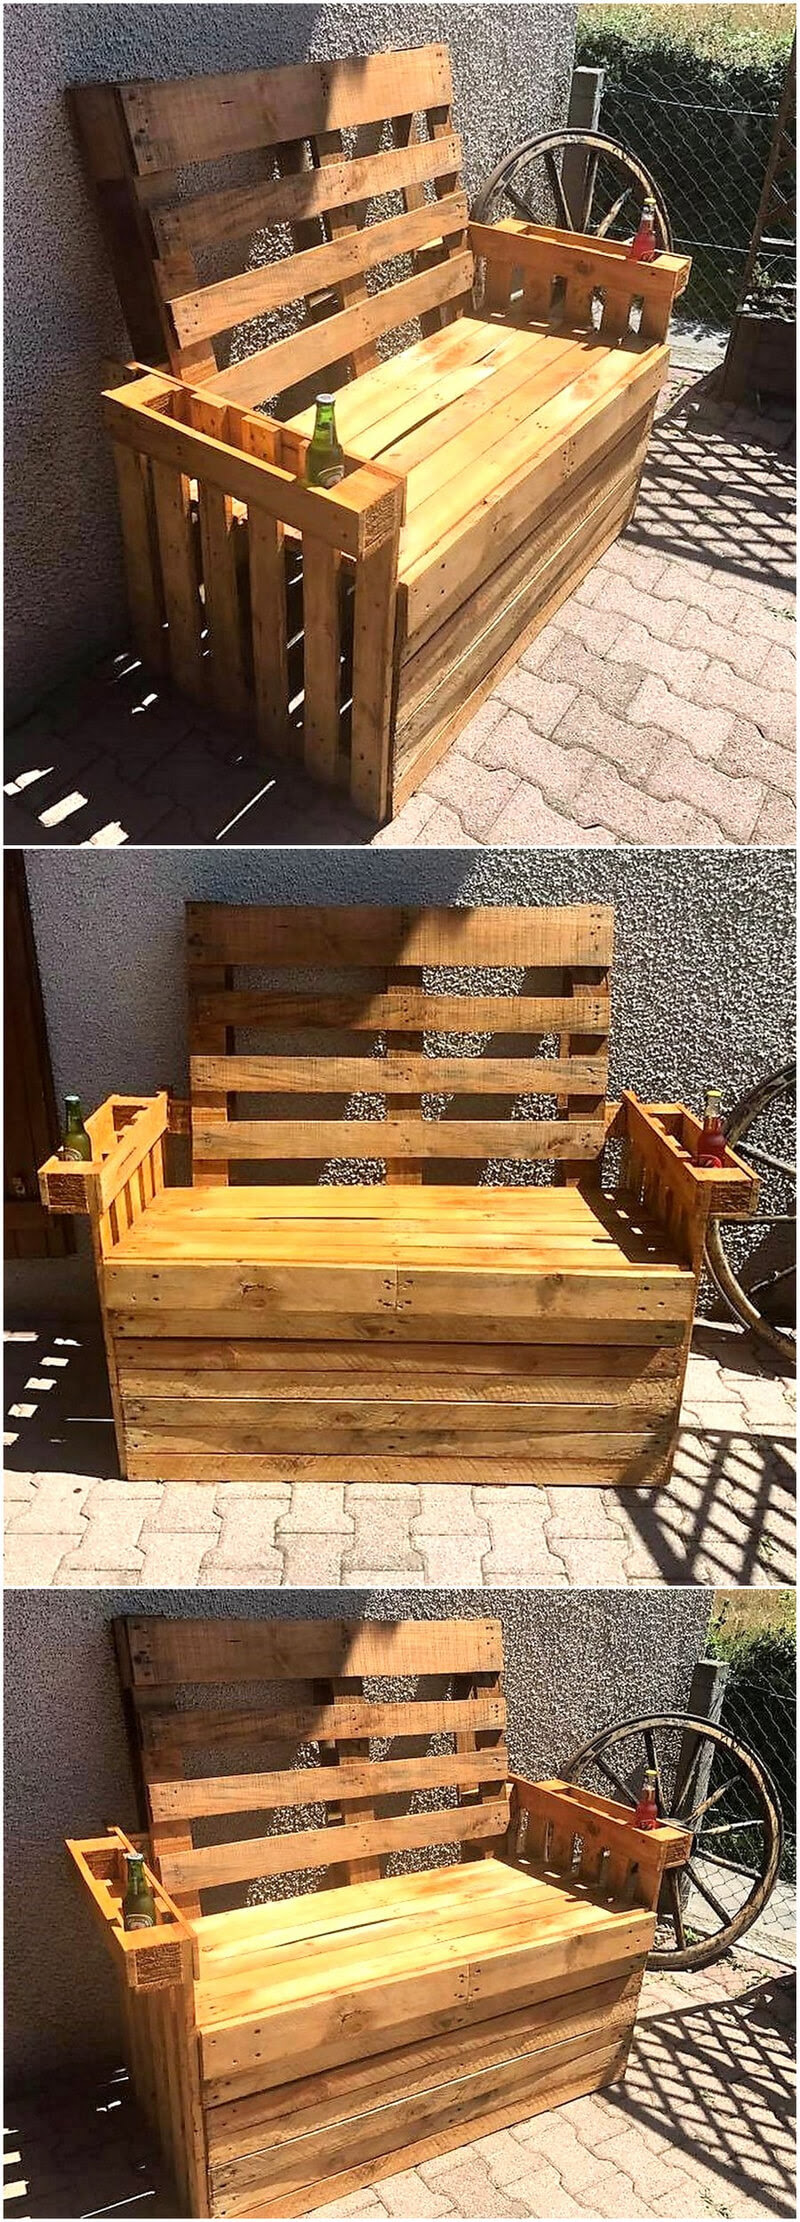 25 Ways to Upcycle Your Old Used Wood Pallets | Wood ...